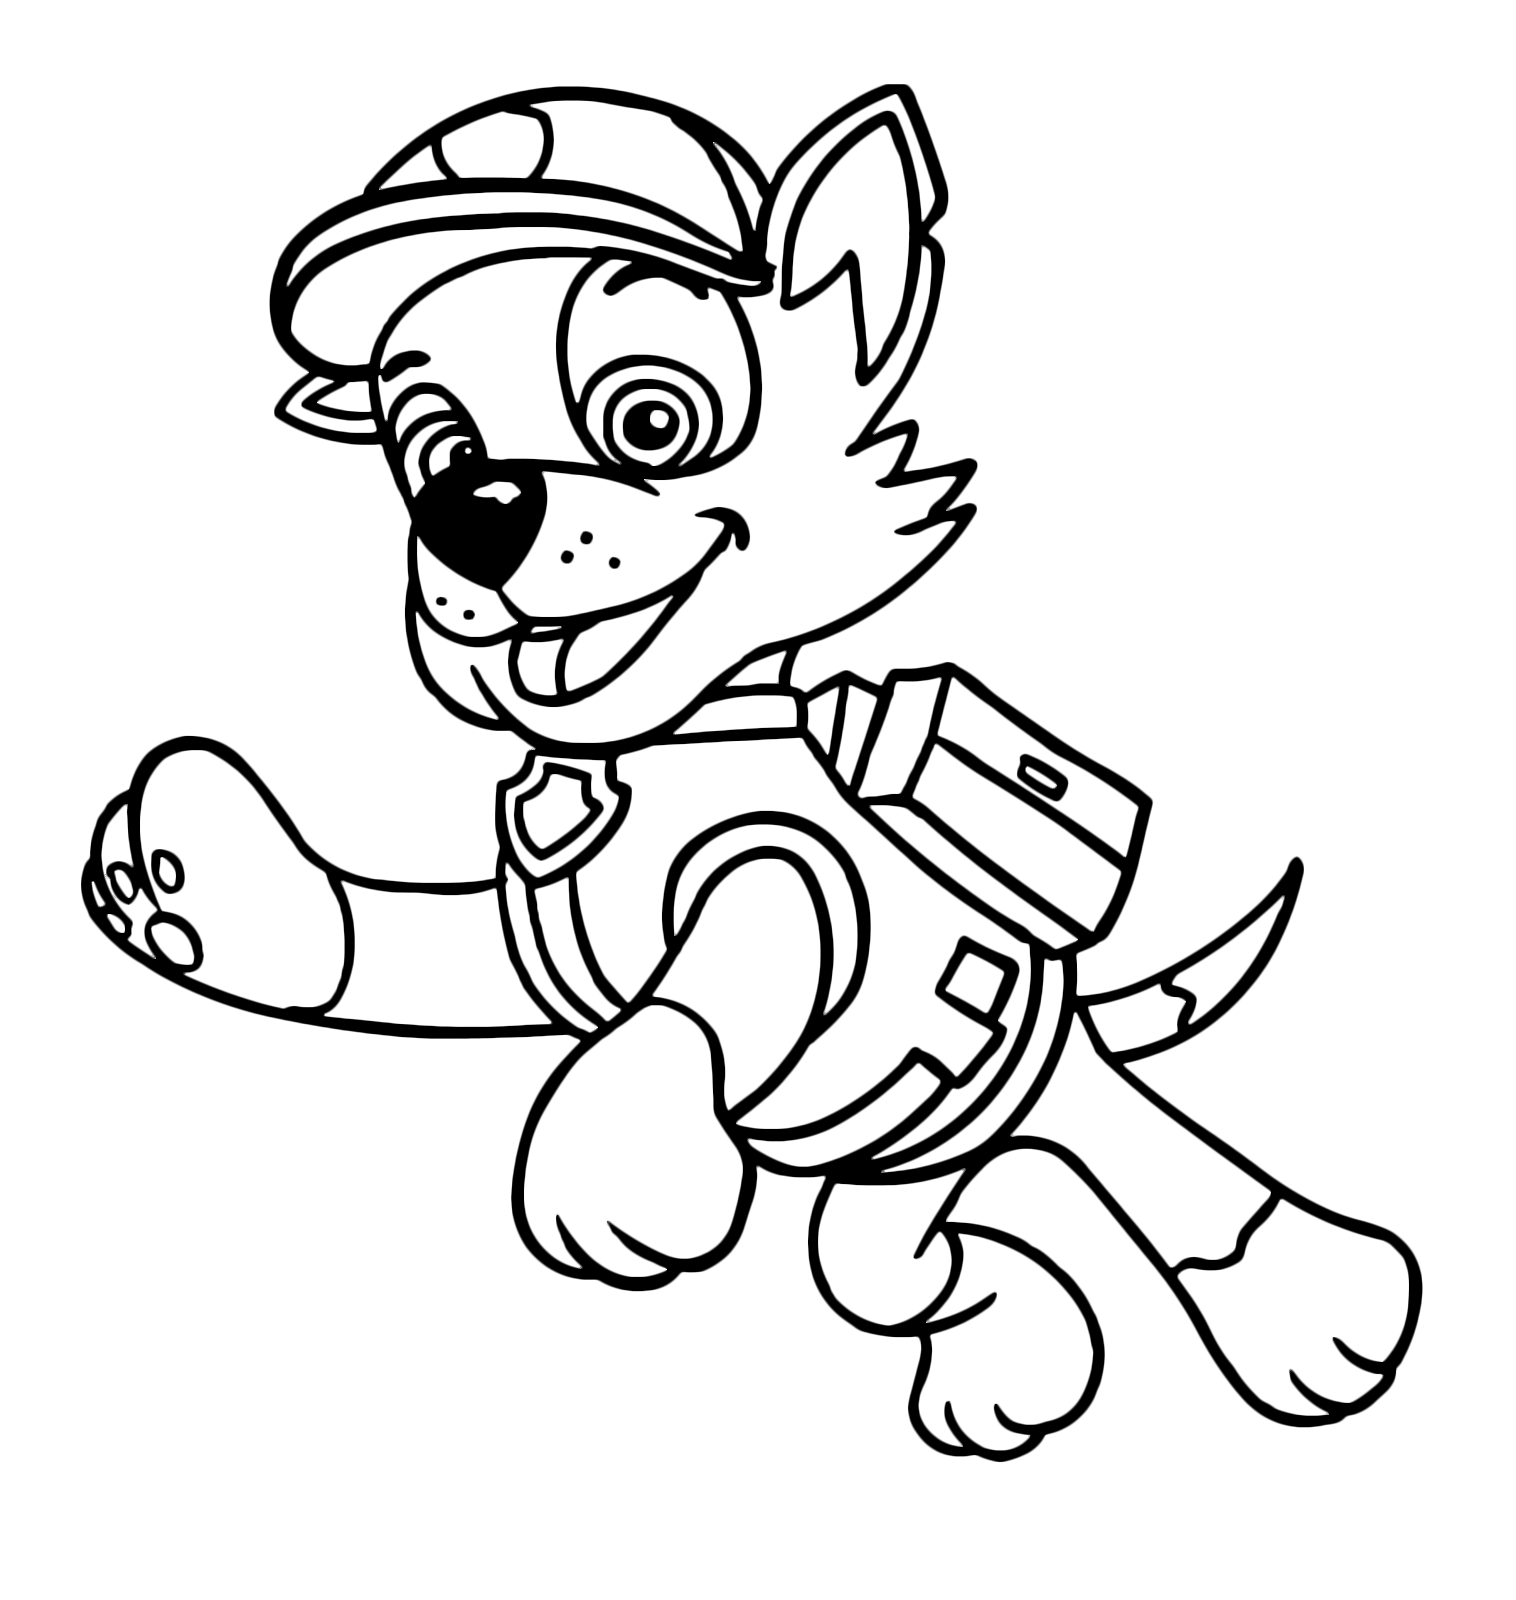 paw patrol rocky rocky paw patrol coloring pages at getcoloringscom free patrol rocky paw